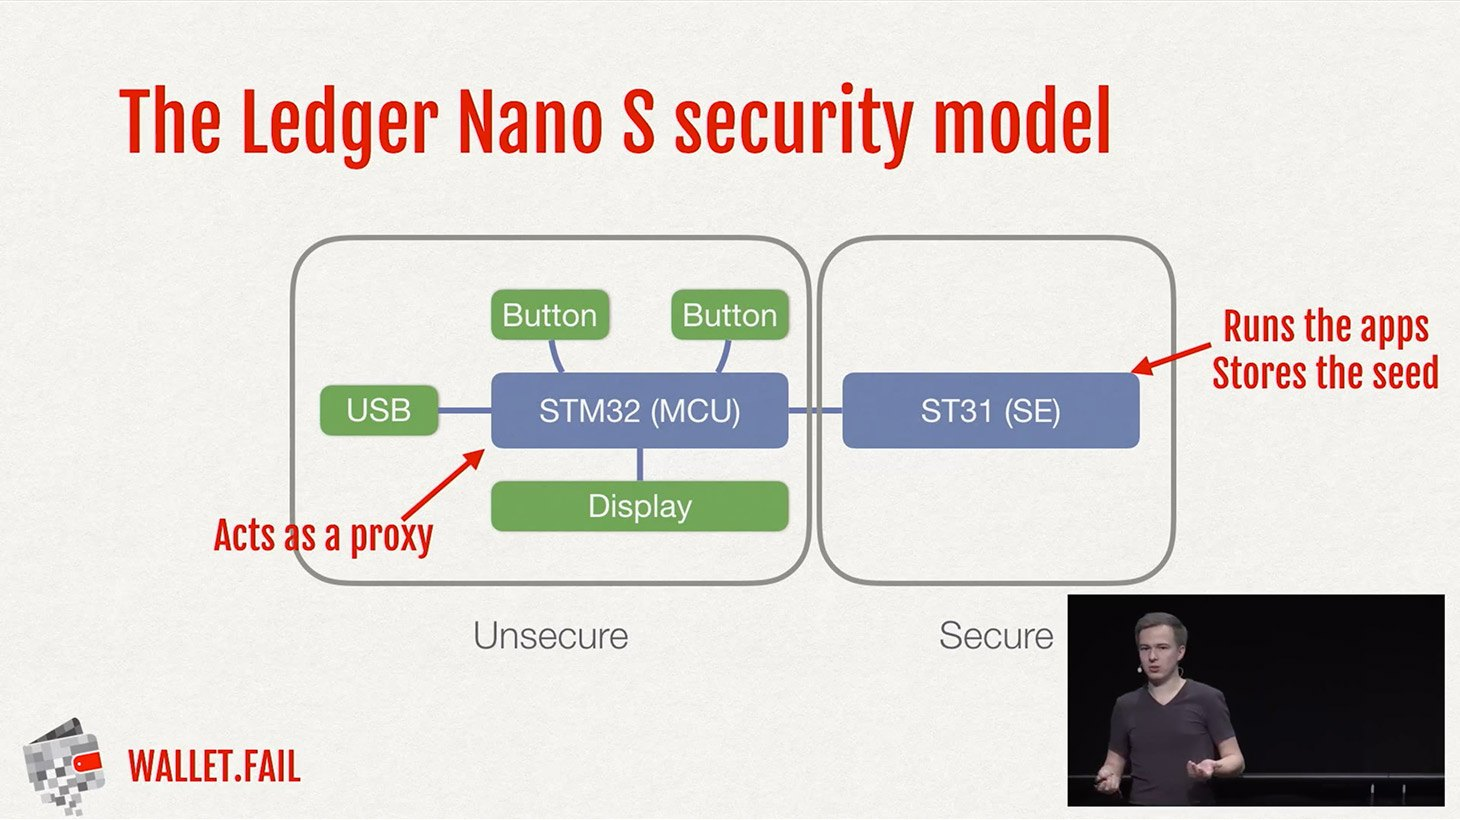 The Ledger Nano S security model